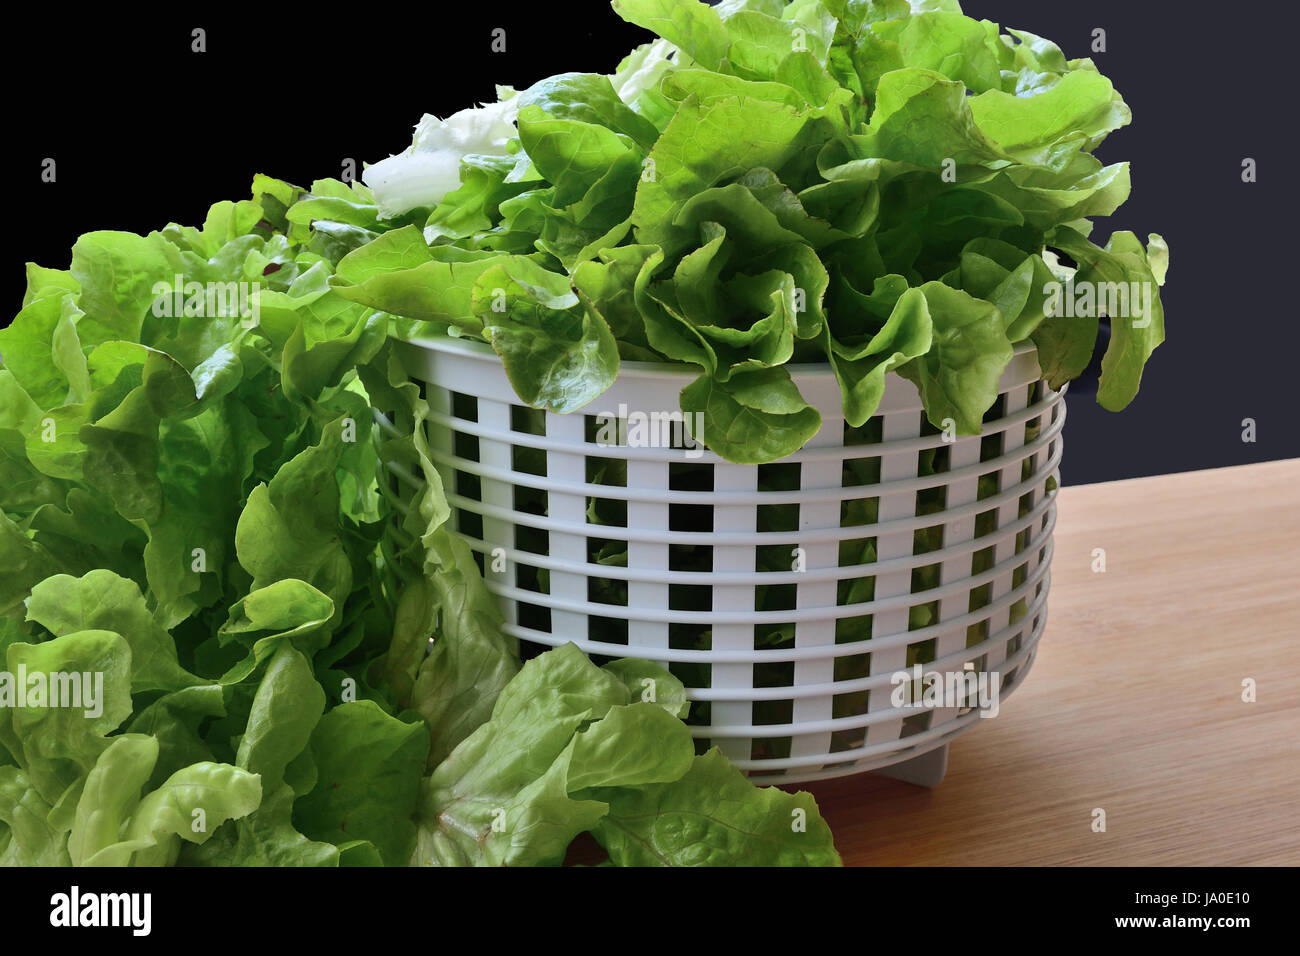 lettuce leaves overflowing from white coliander on cutting board - Stock Image